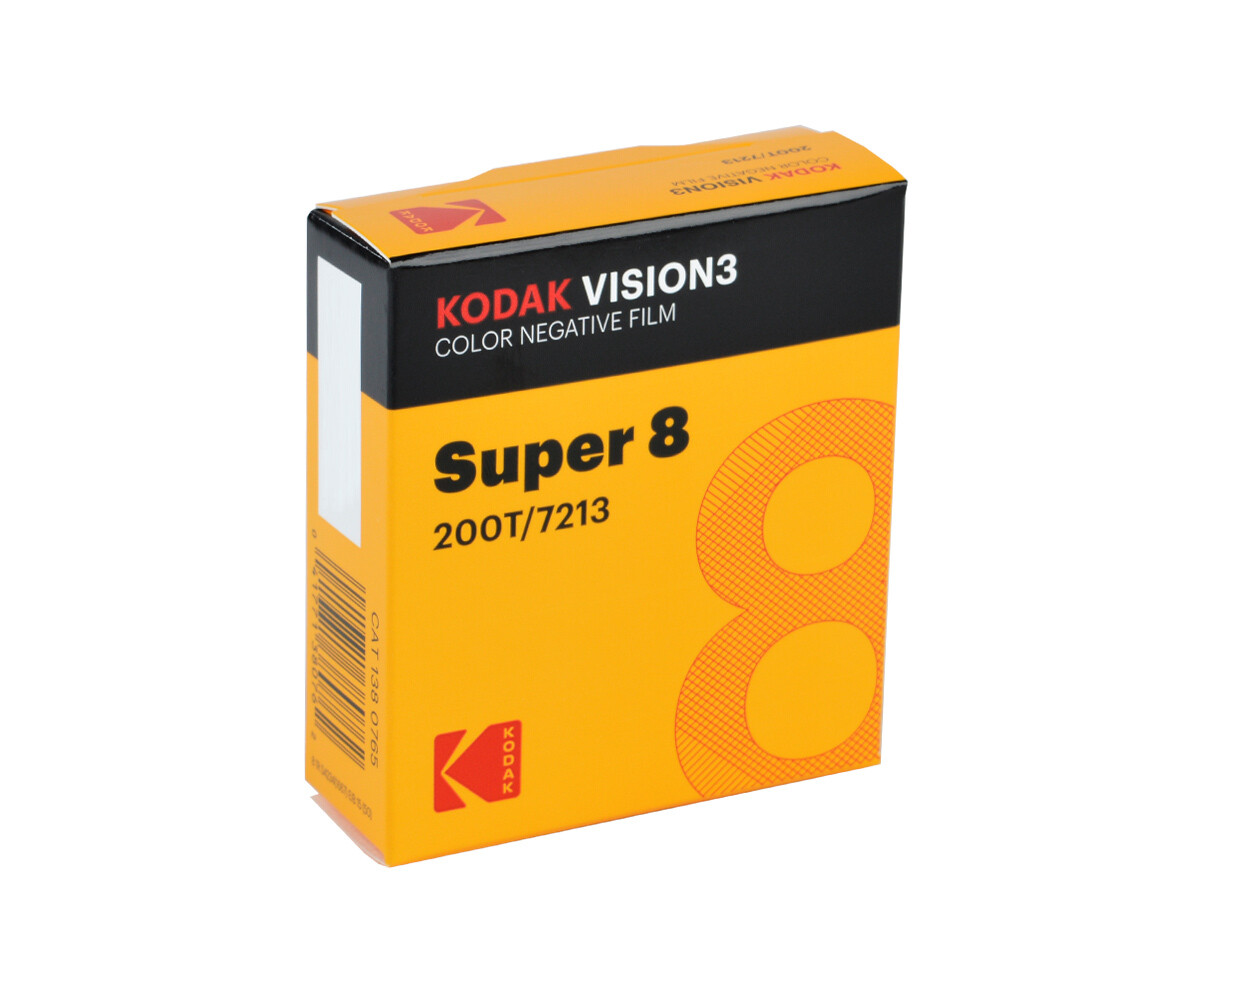 Kodak VISION3 200T Color Negative Film 7213 Casette Super 8 - 15 meter)